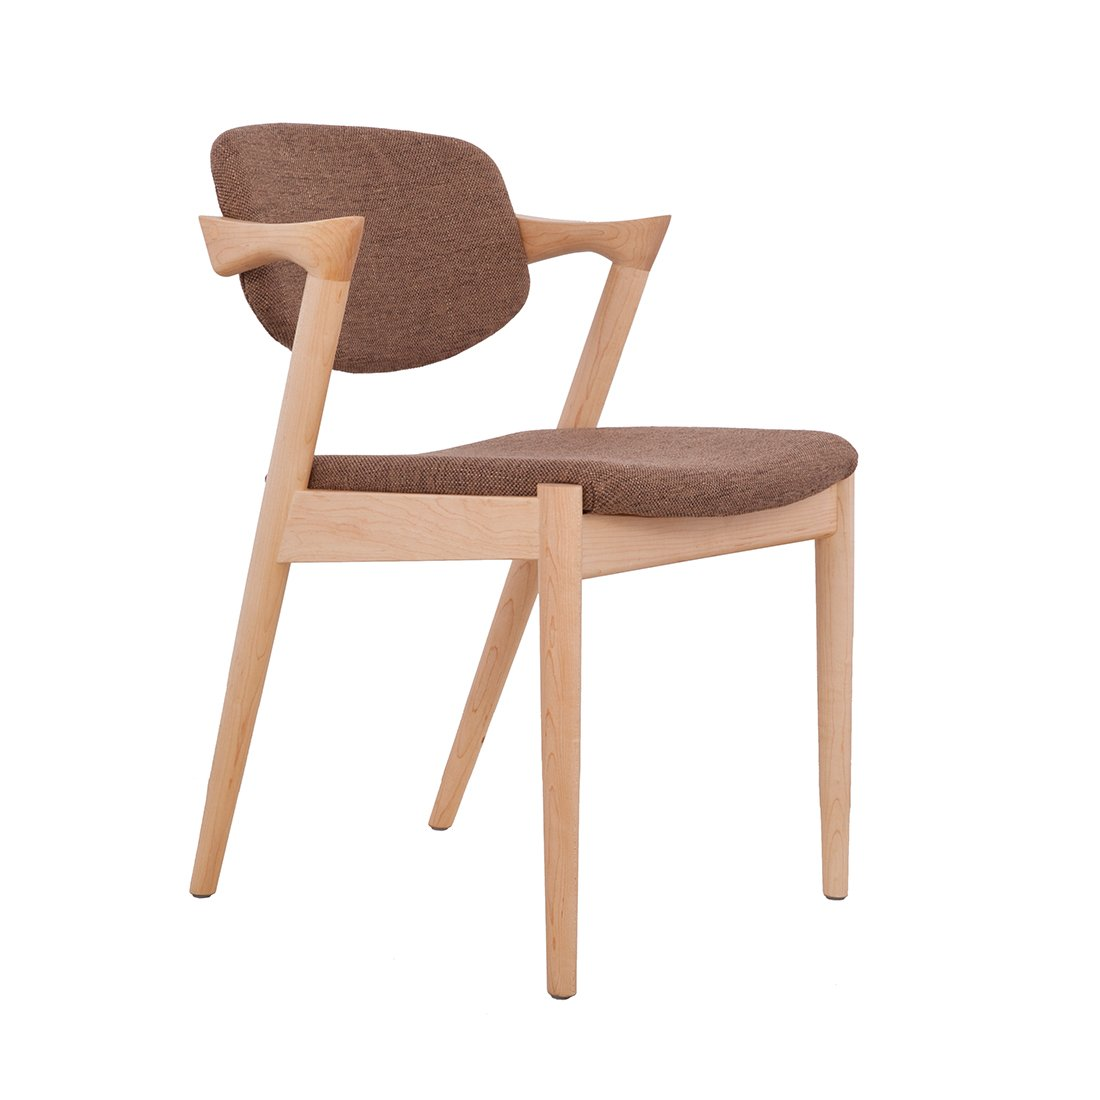 [FEC7629TWBRN] The Levanger Arm Chair